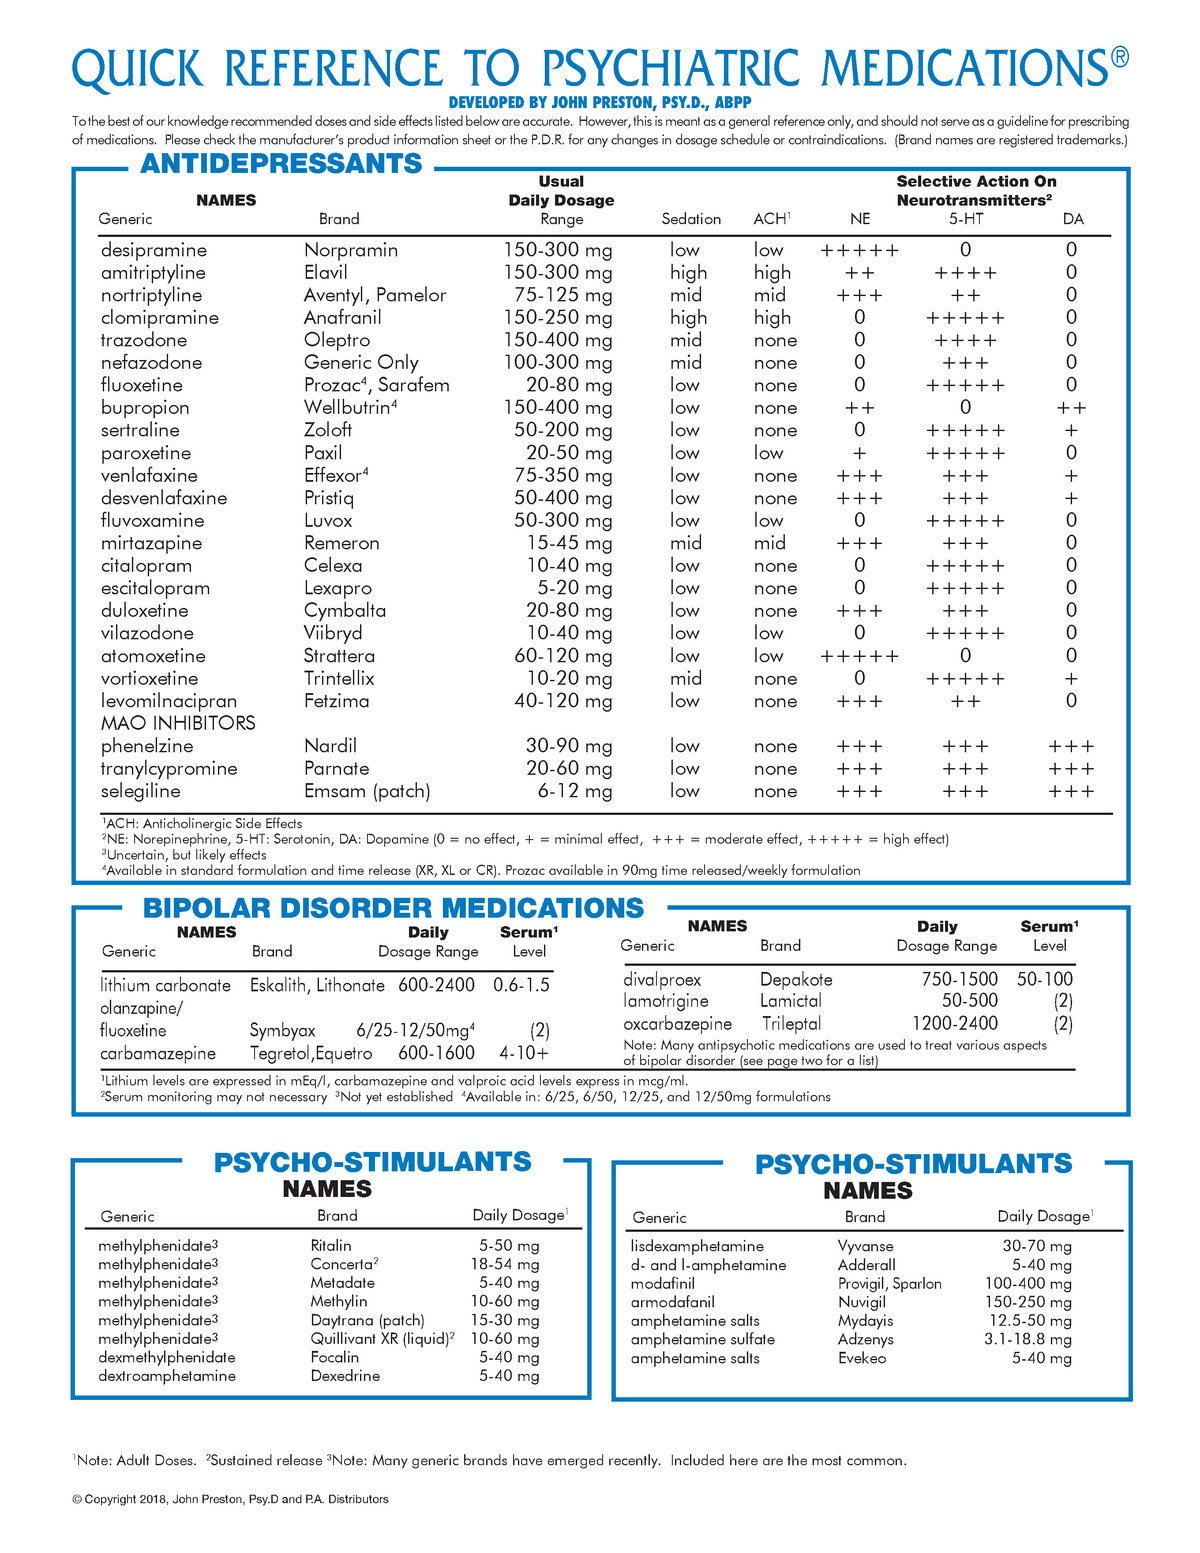 Psychpharm Quick Reference - CLP3305 Clinical Psychology